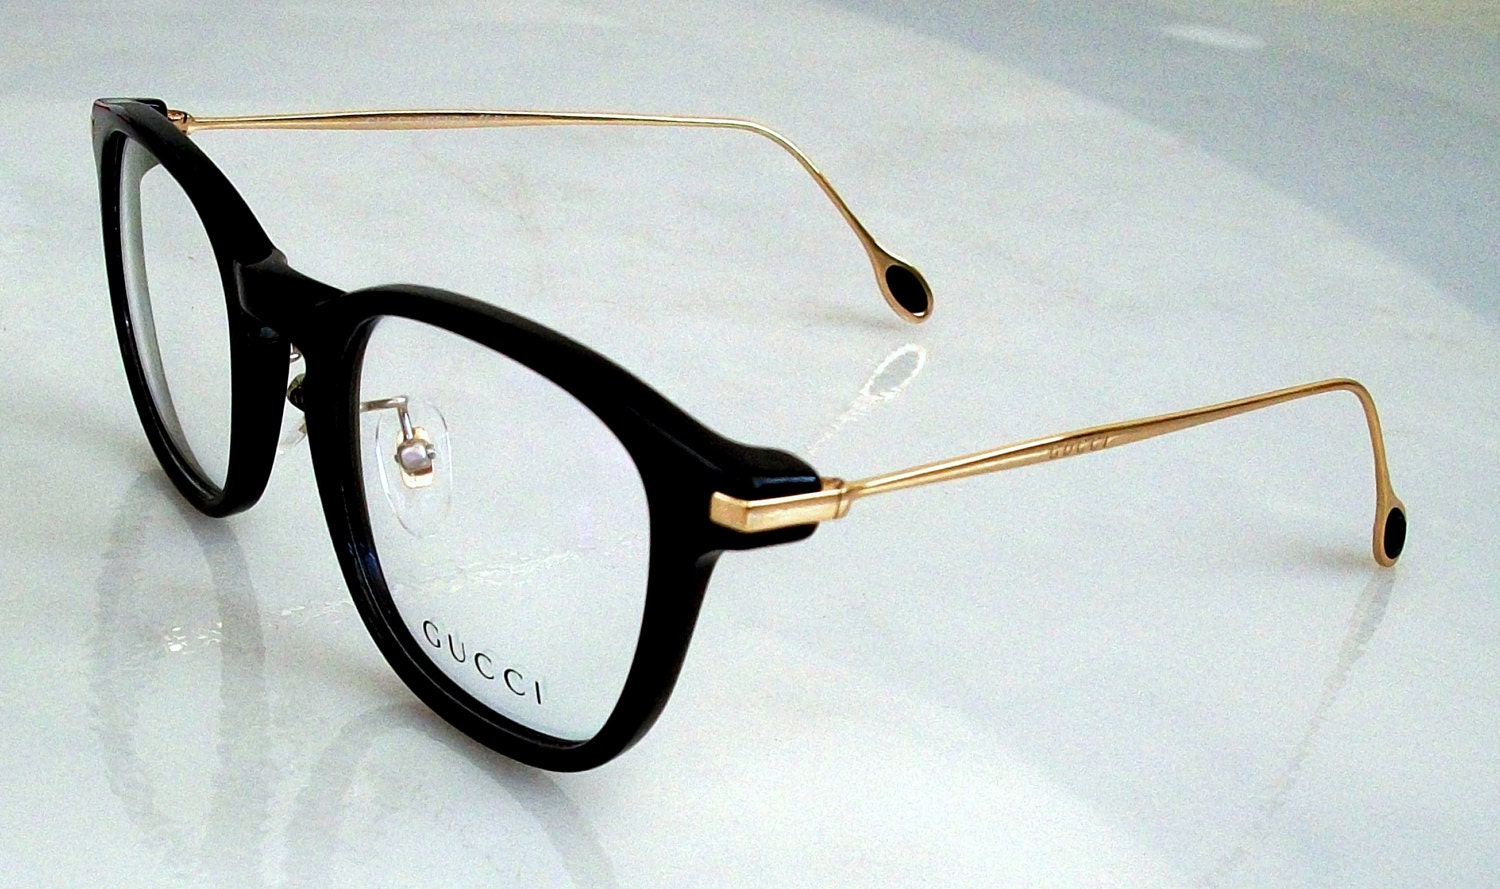 vintage gucci eyeglasses black frame gold temples clear demonstration lens in original package 145mm for men great giftcondition mint